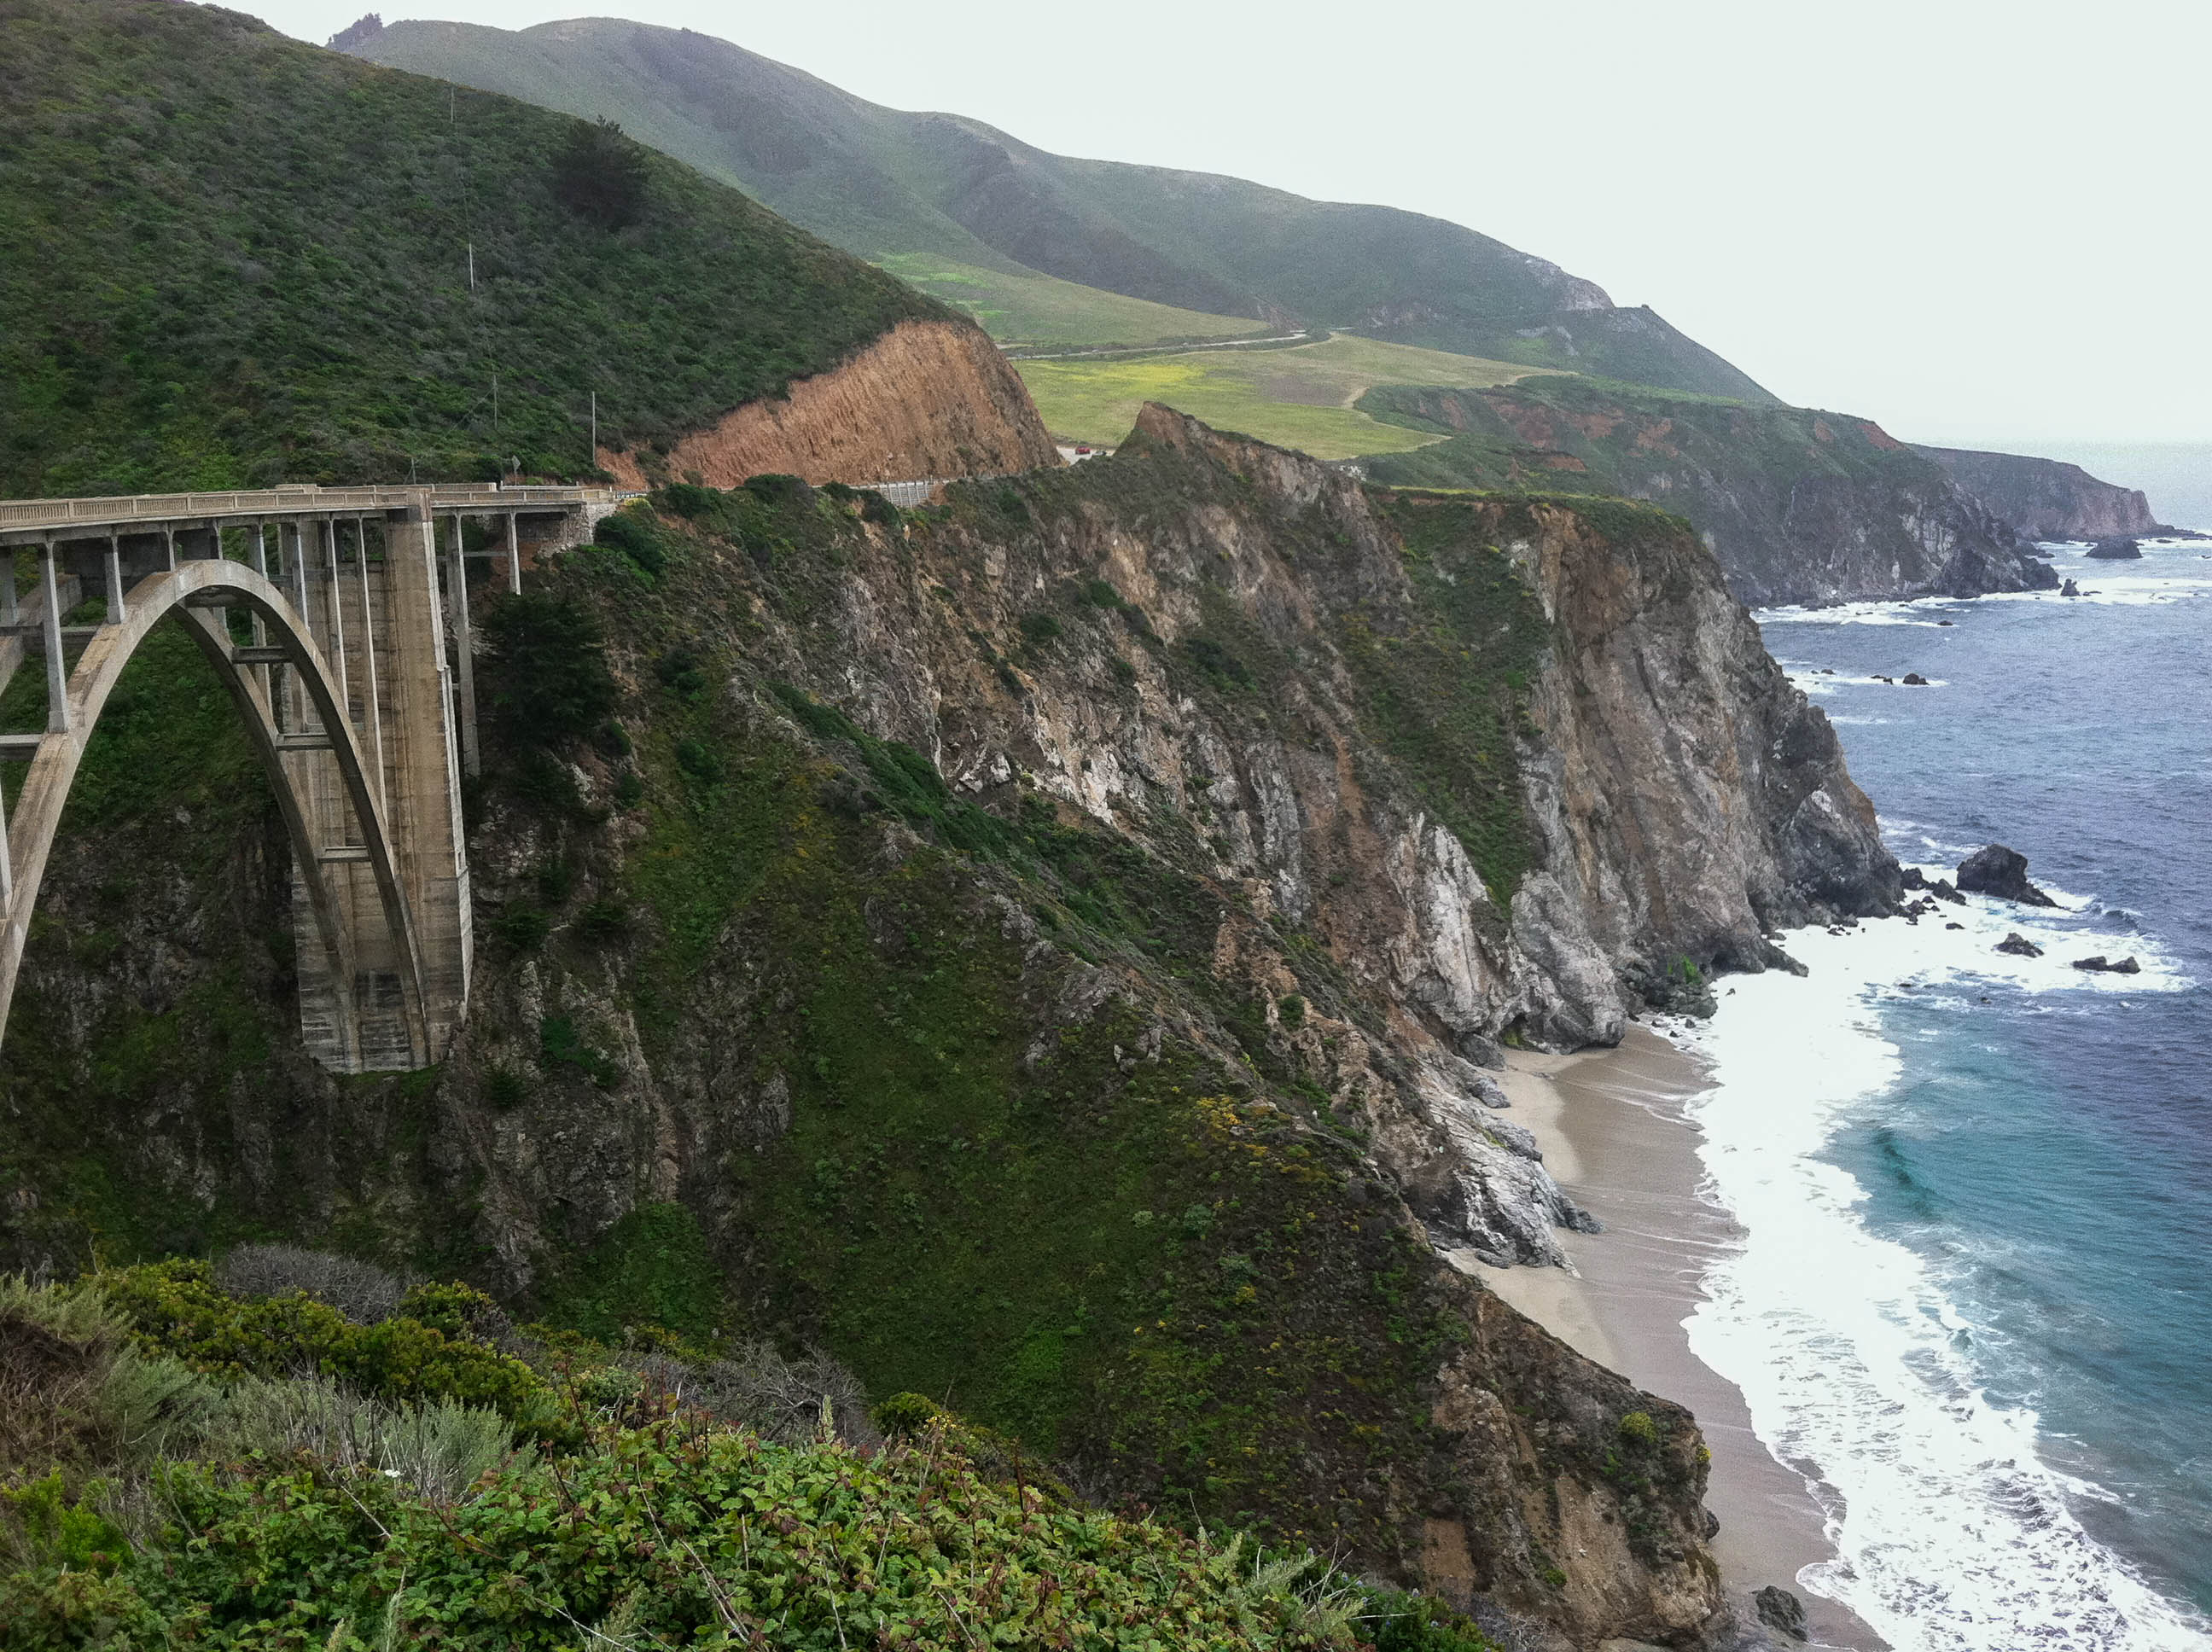 Big Sur, Bixby Bridge, On The Road, Jack Kerouac